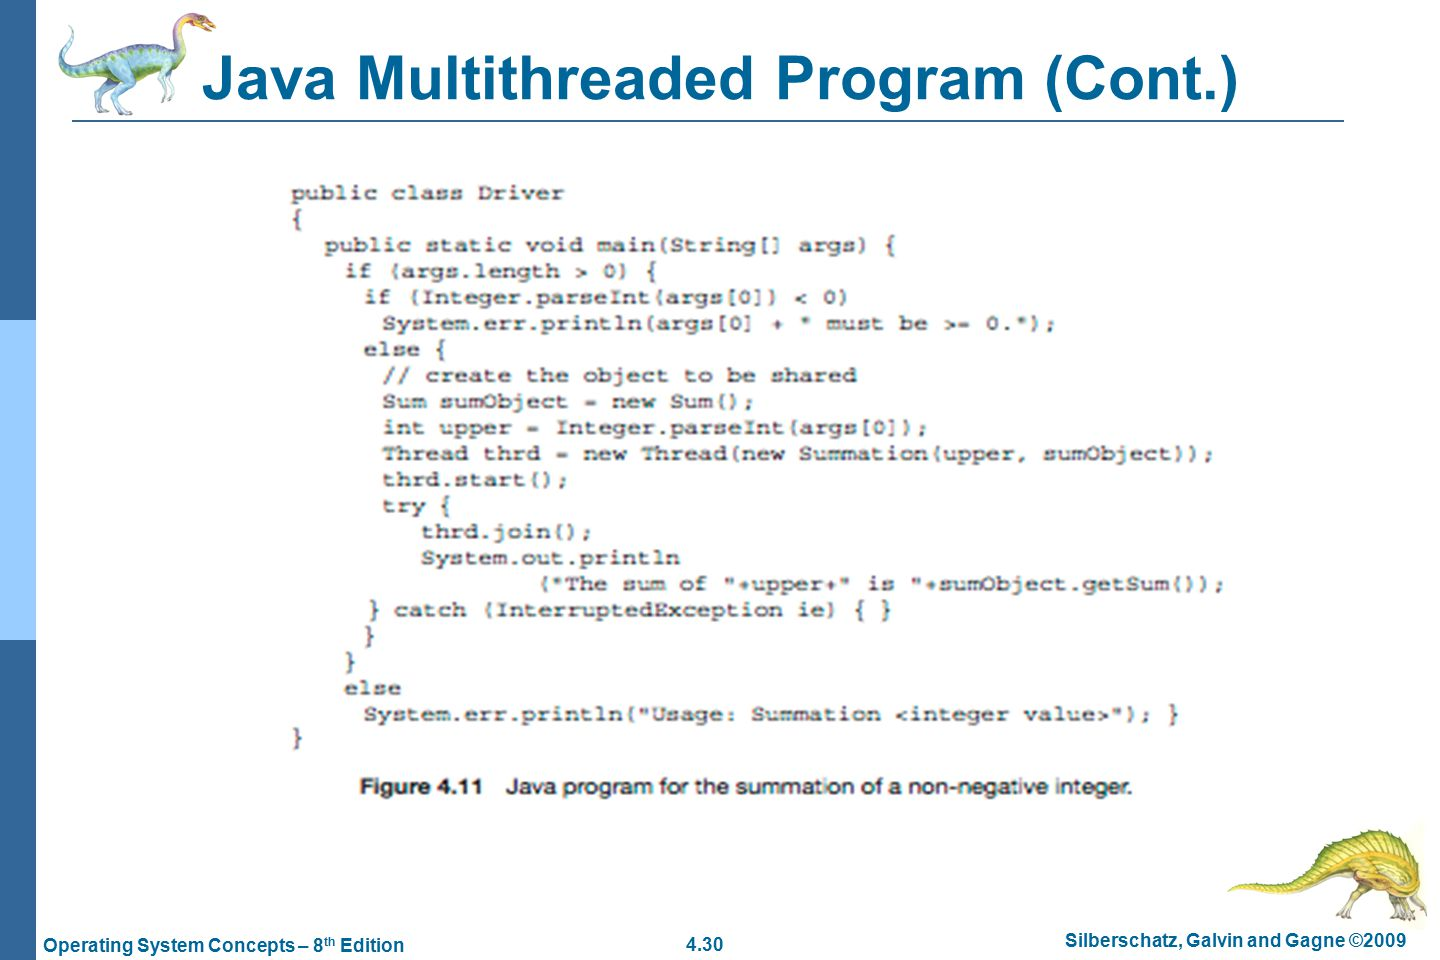 4.30 Silberschatz, Galvin and Gagne ©2009 Operating System Concepts – 8 th Edition Java Multithreaded Program (Cont.)